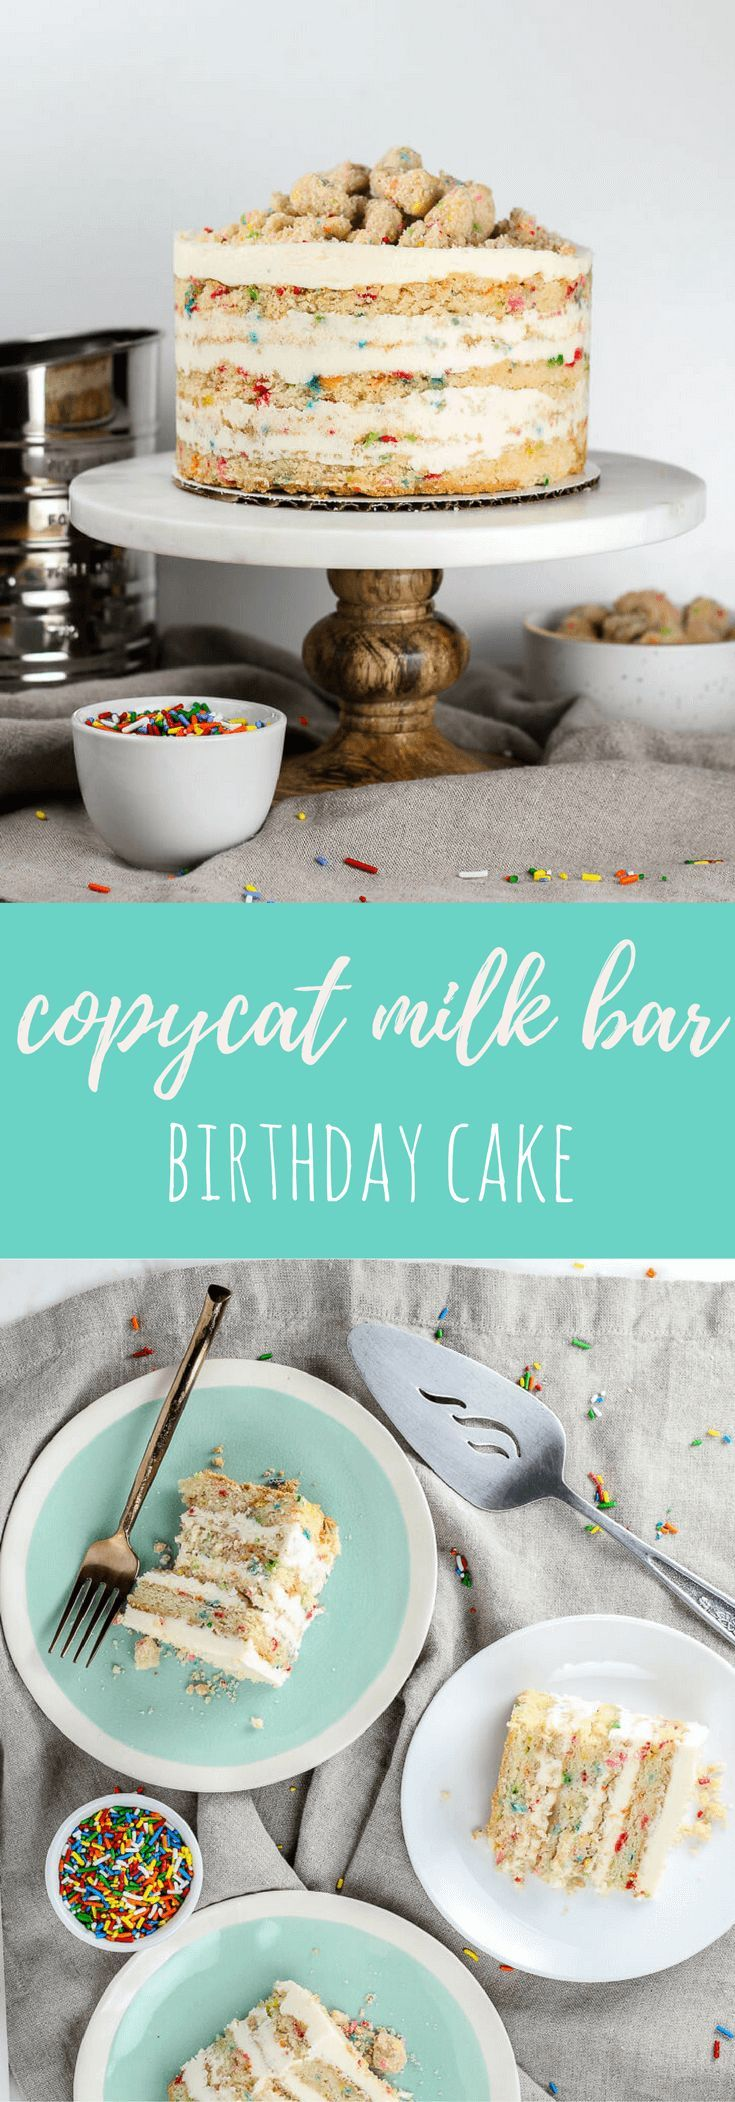 An adaptation of the famous Milk Bar birthday cake: melt-in-your-mouth layers of Funfetti cake with birthday cake soak, topped with vanilla cream cheese frosting and birthday cake crumbs. via @flourcoveredapron